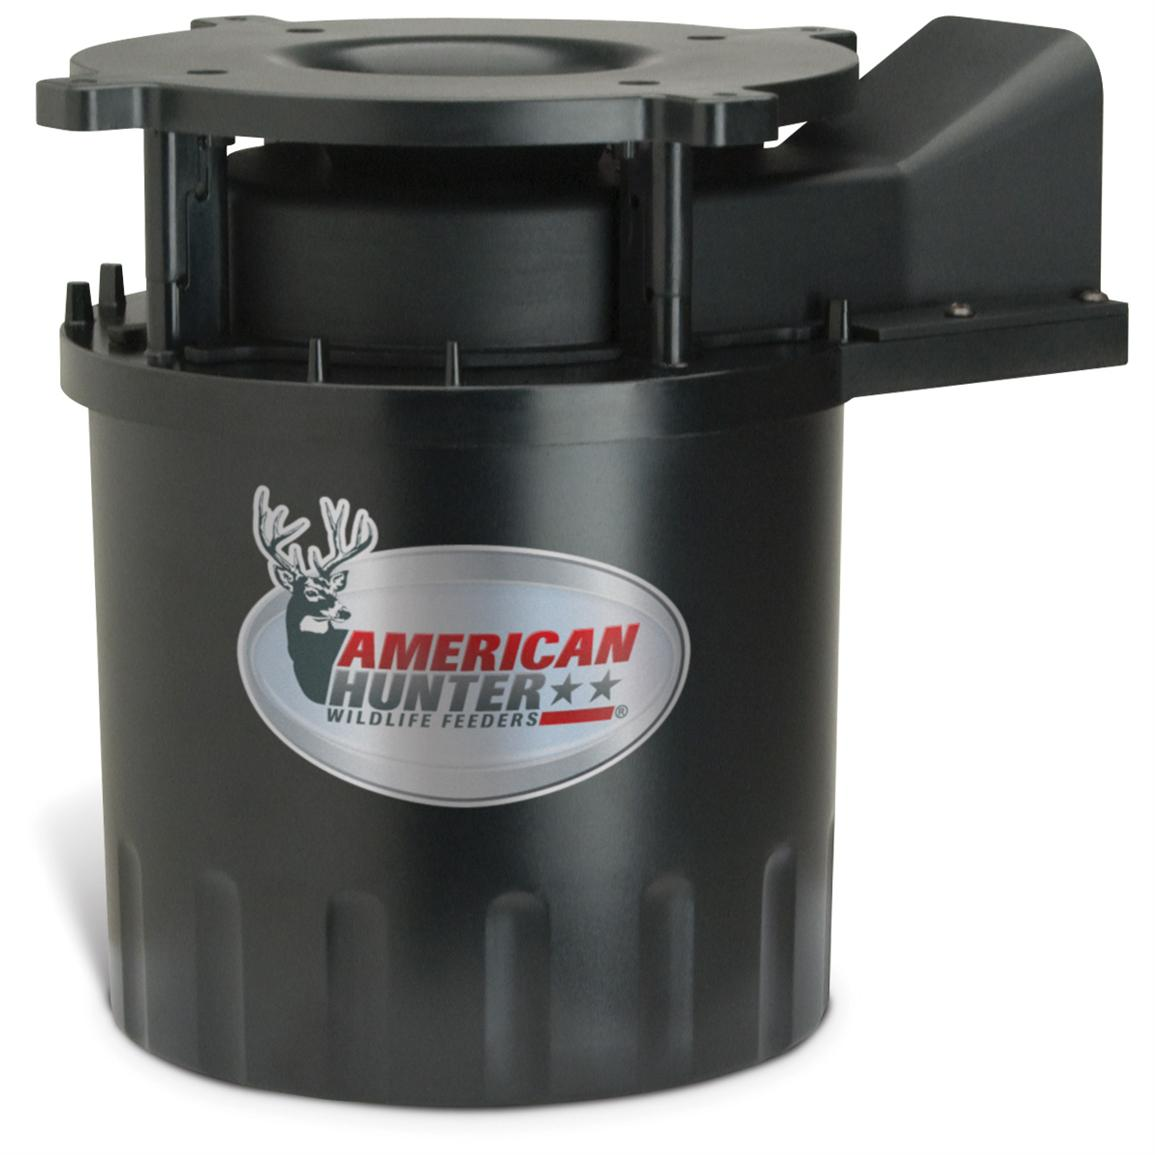 American Hunter Wildlife Feeders Directional Kit